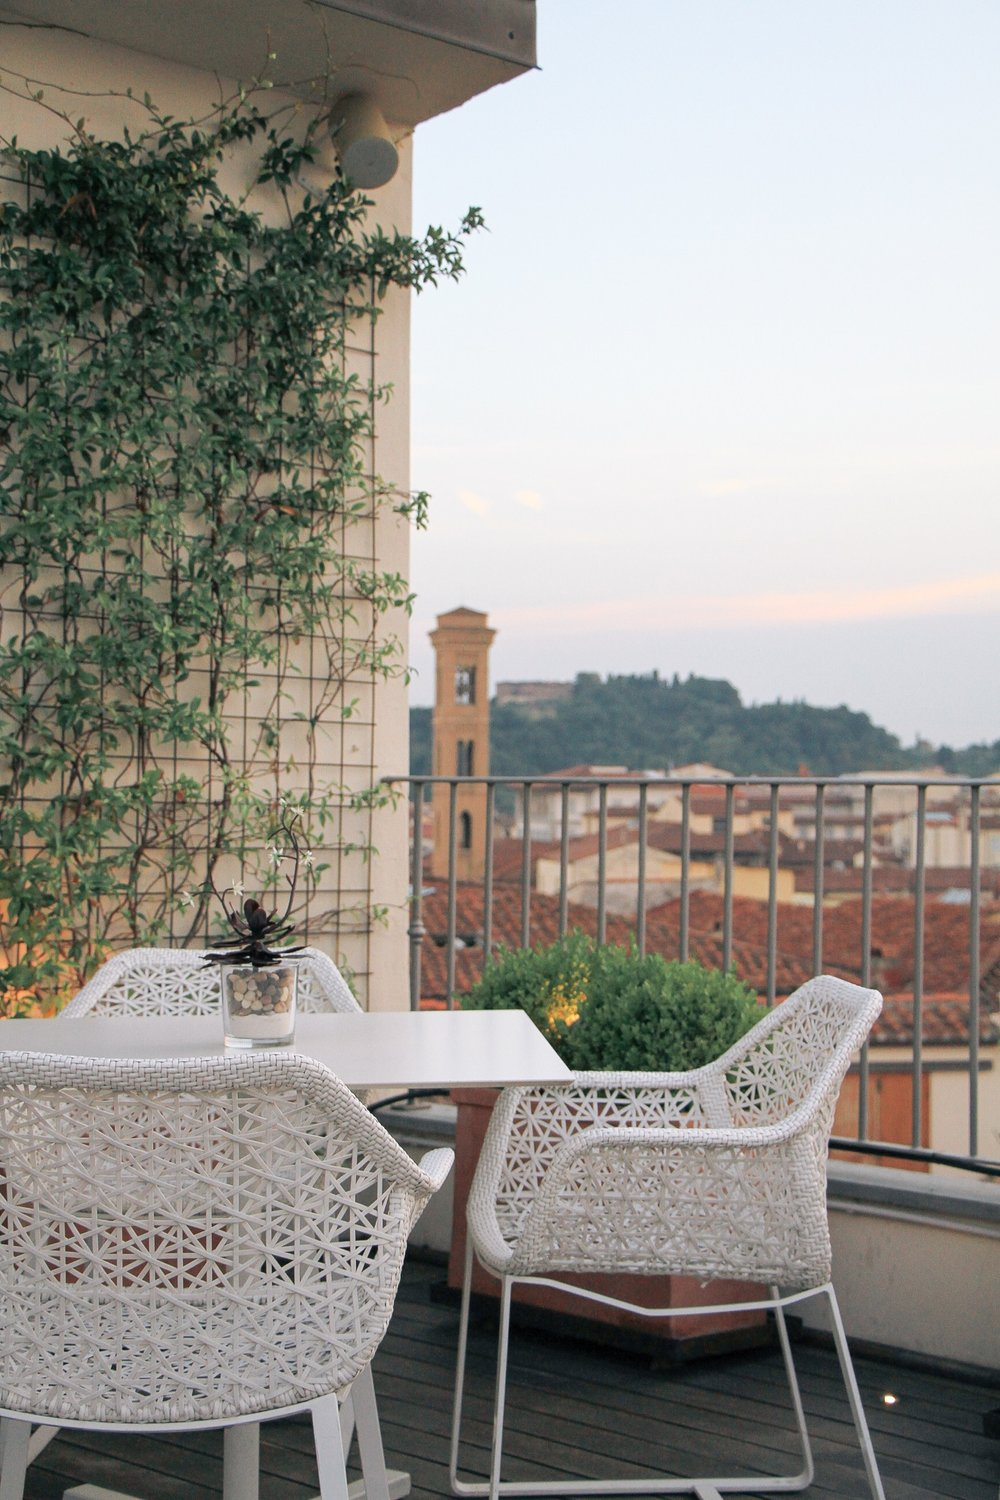 Ten-Days-Florence-Tuscany-Travel-Guide-MonicaFrancis-6